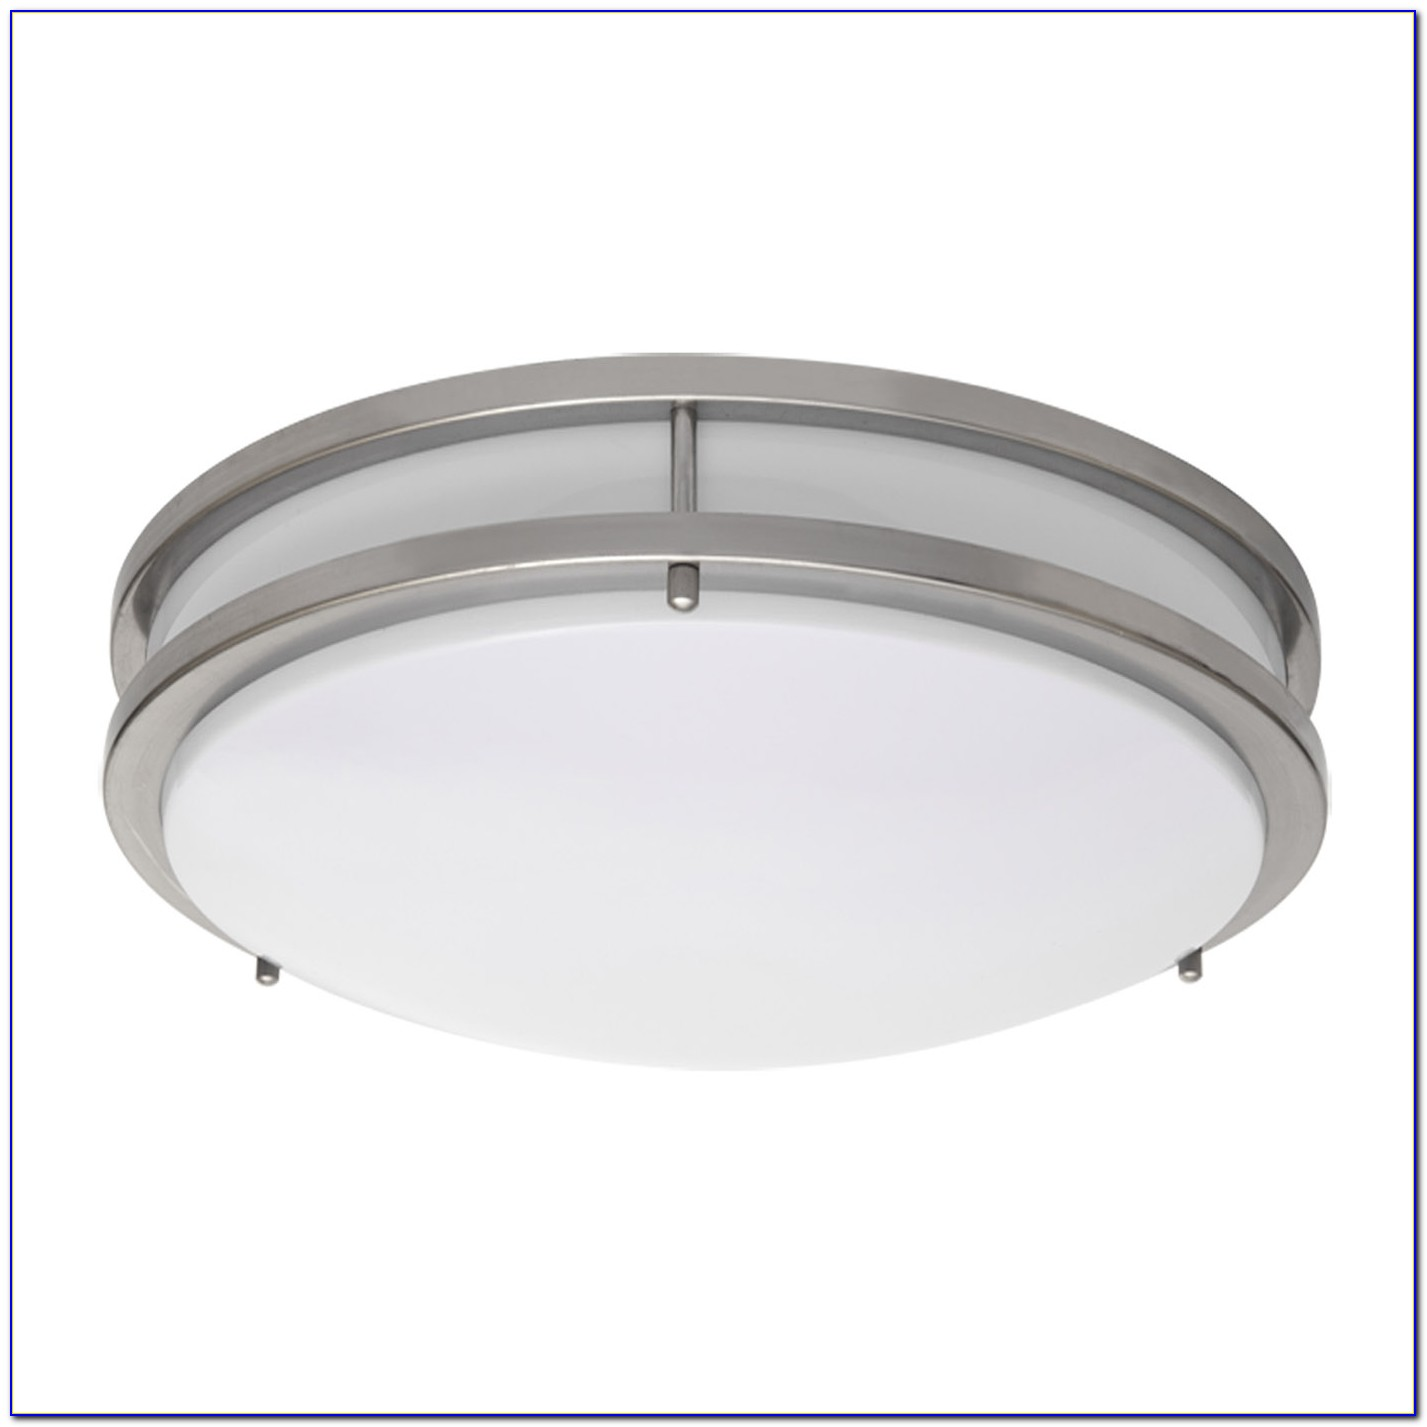 Flush Mount Led Ceiling Fixture